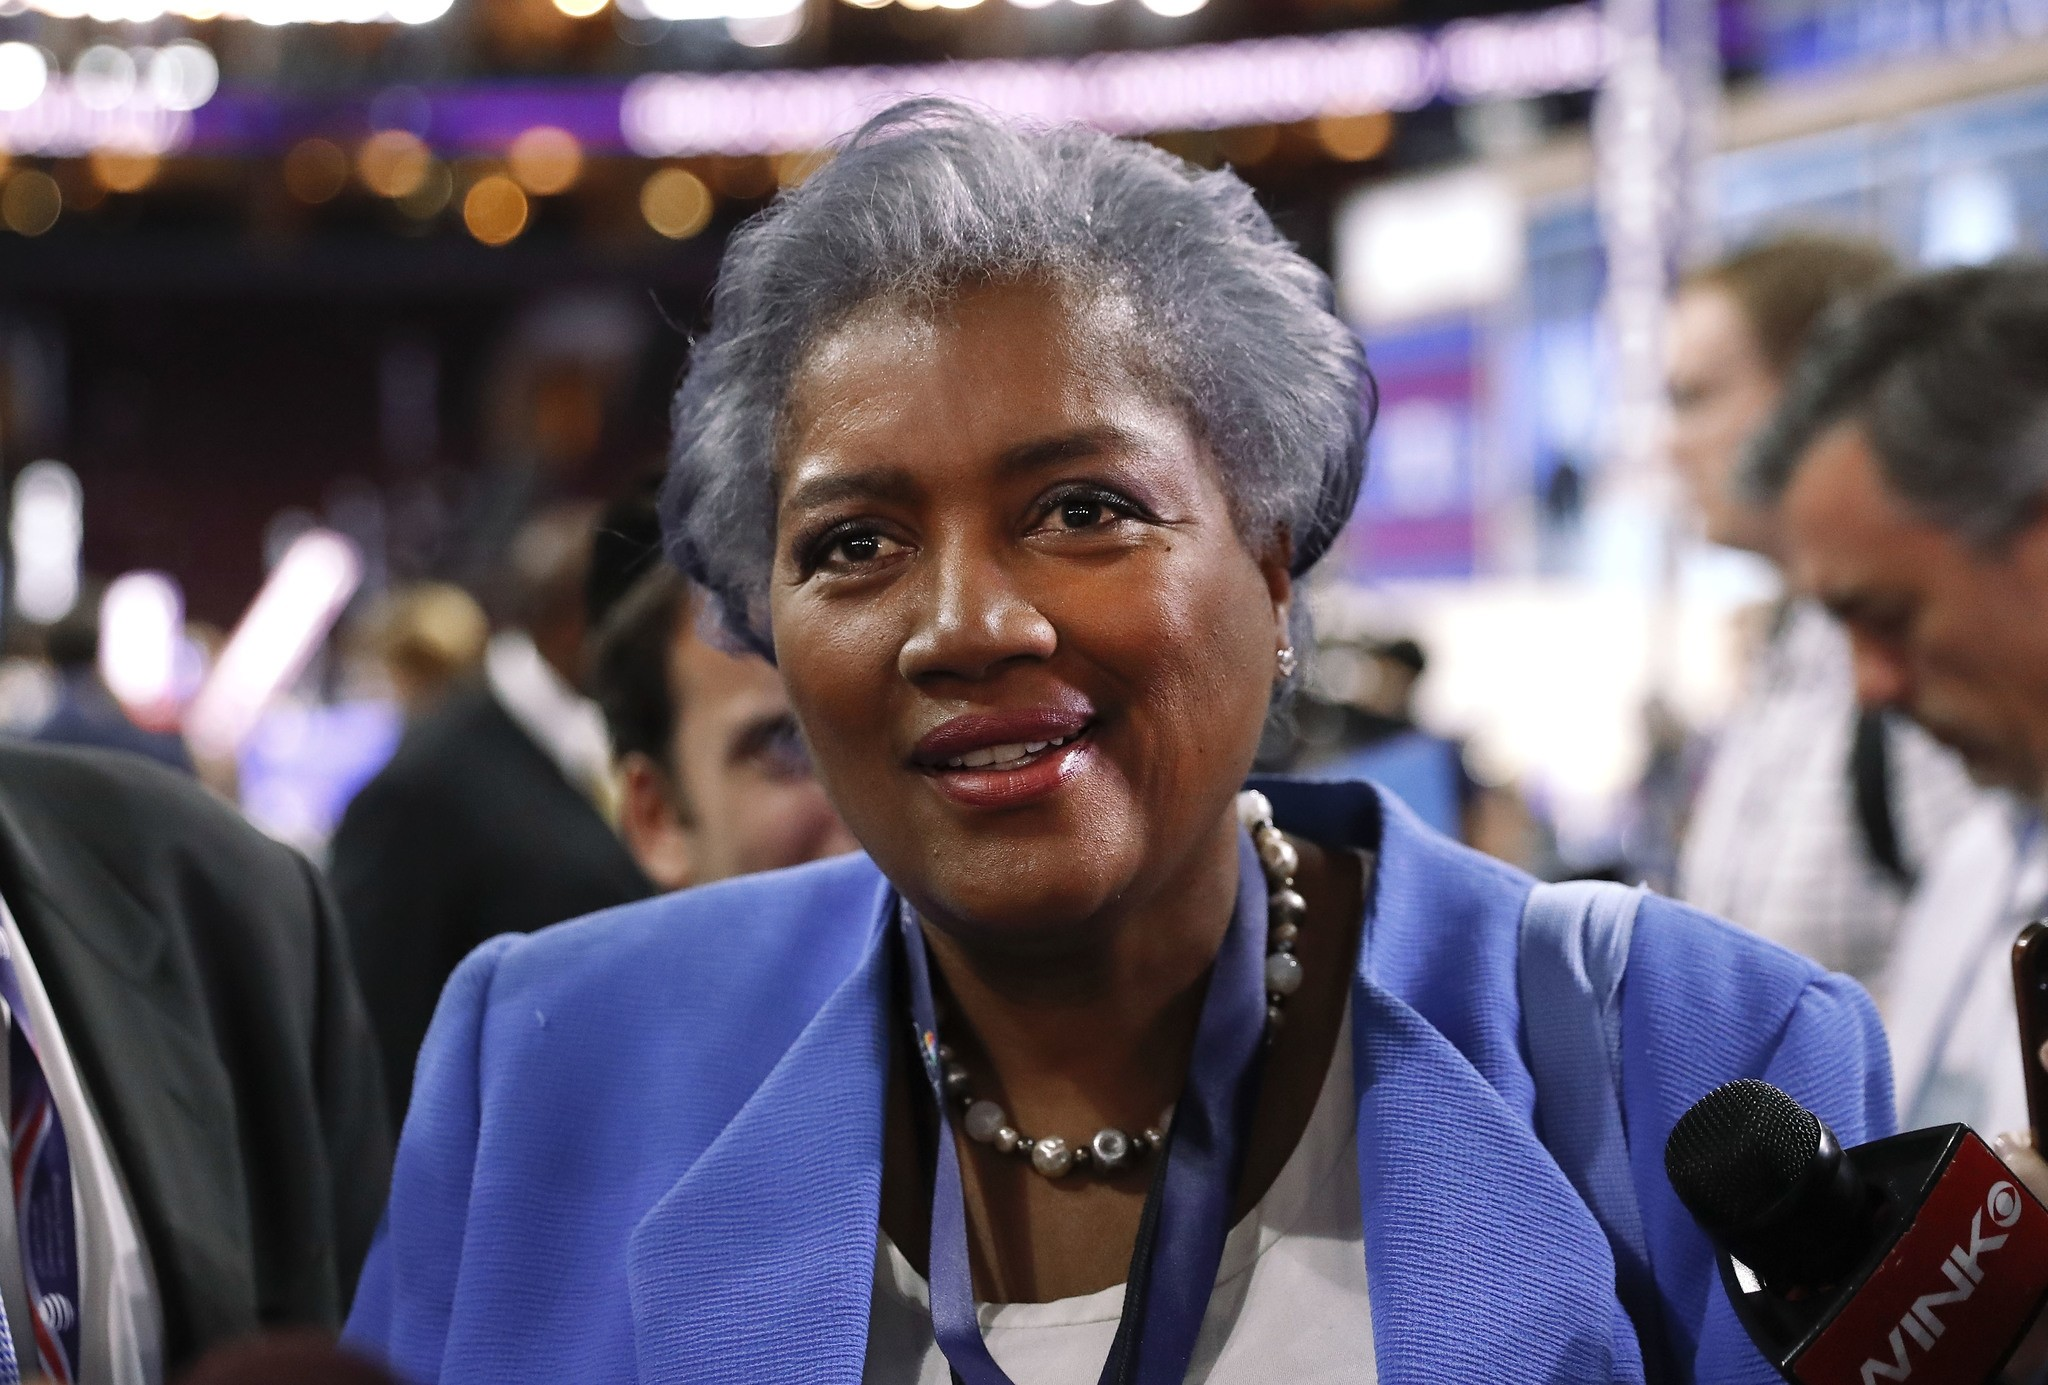 Donna Brazile, interim chair of the Democratic National Committee, appears on the floor of the Democratic National Convention in Philadelphia. (AP Photo)